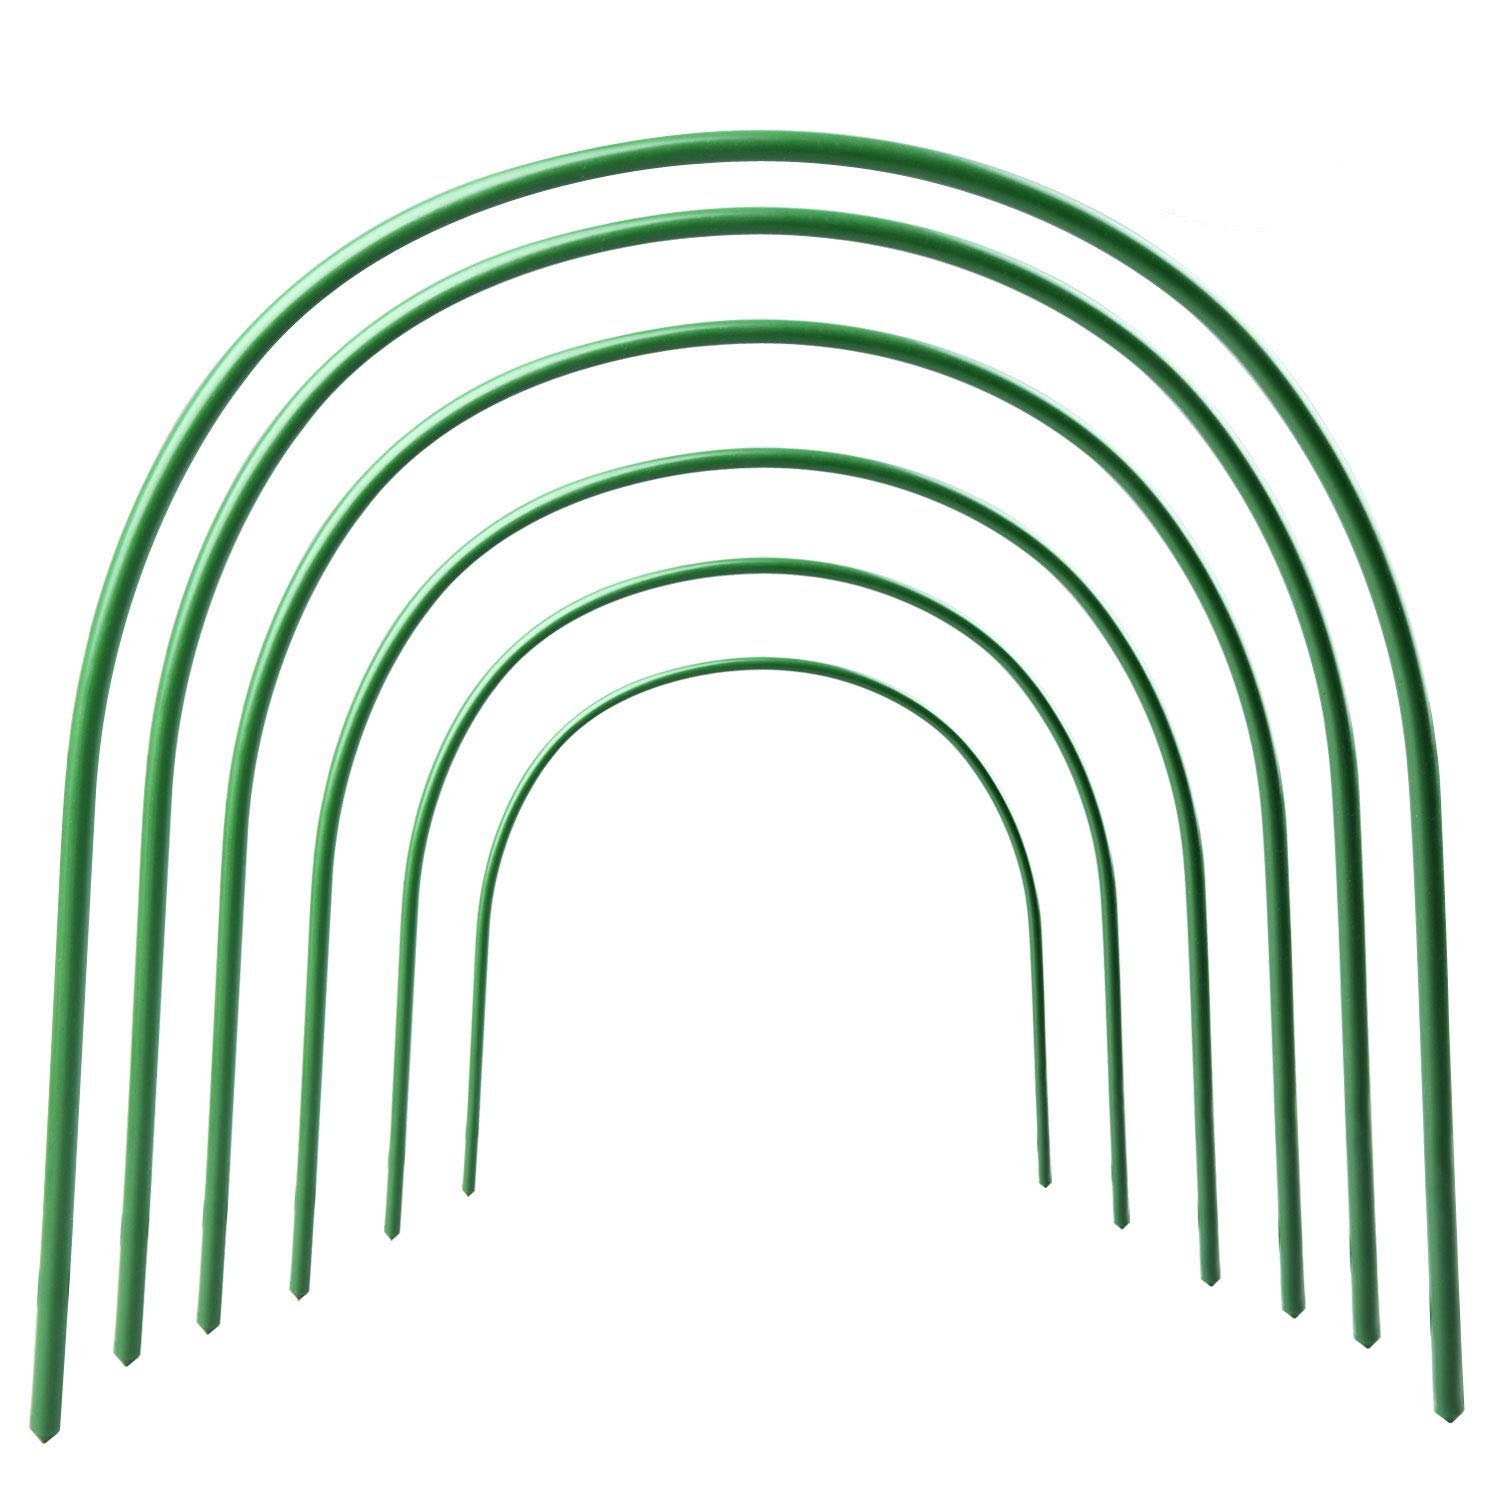 WDDH 6Pcs Portable 4ft long Plastic Hoops,Greenhouse Hoops,Grow Tunnel,Support Hoops Garden Fabric